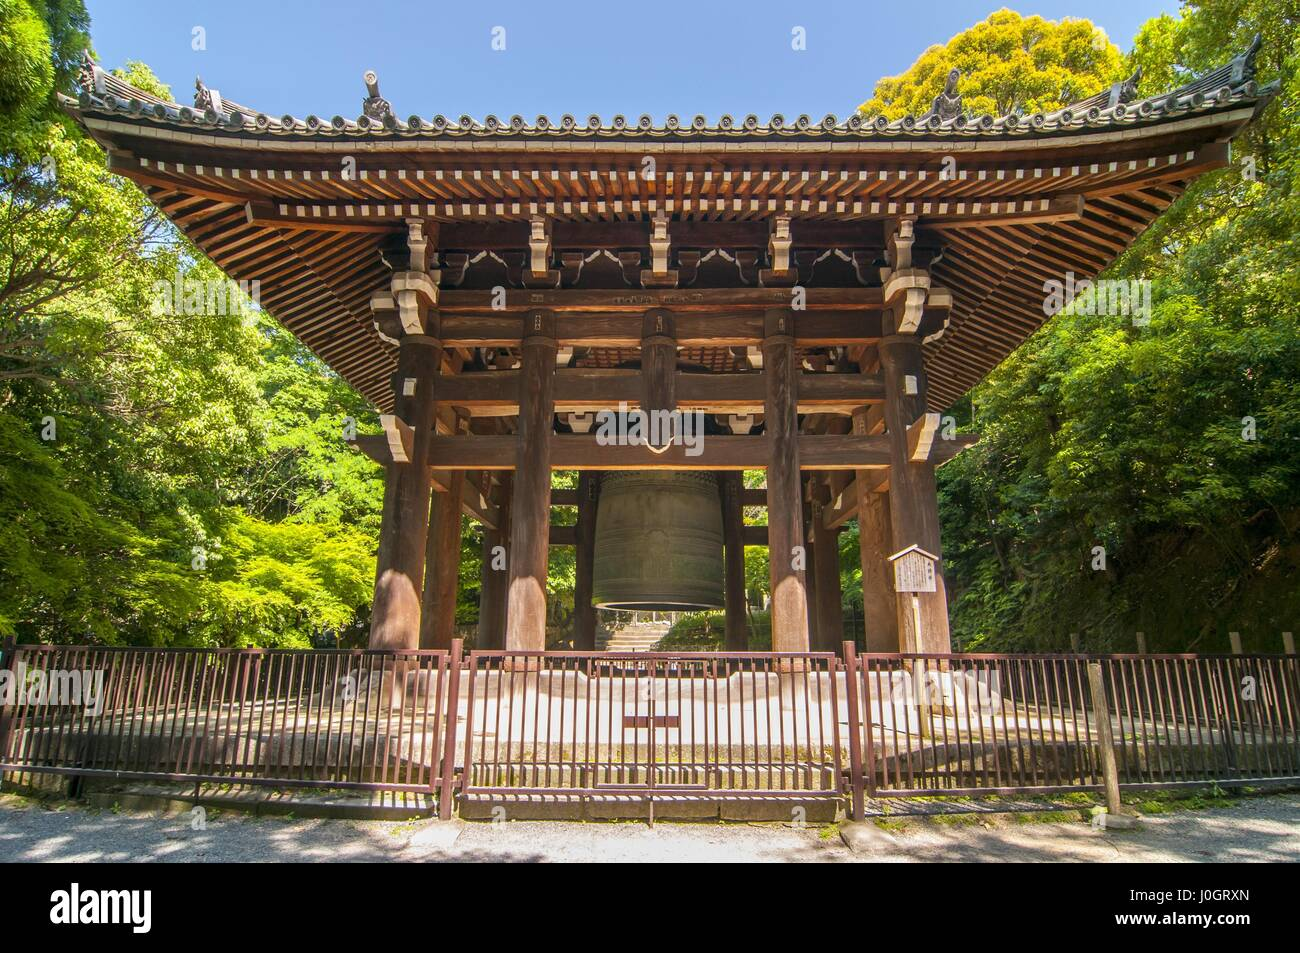 The largest bronze bell in Japan is this one at Chion-in Temple in the Higashiyama district of Kyoto - Stock Image